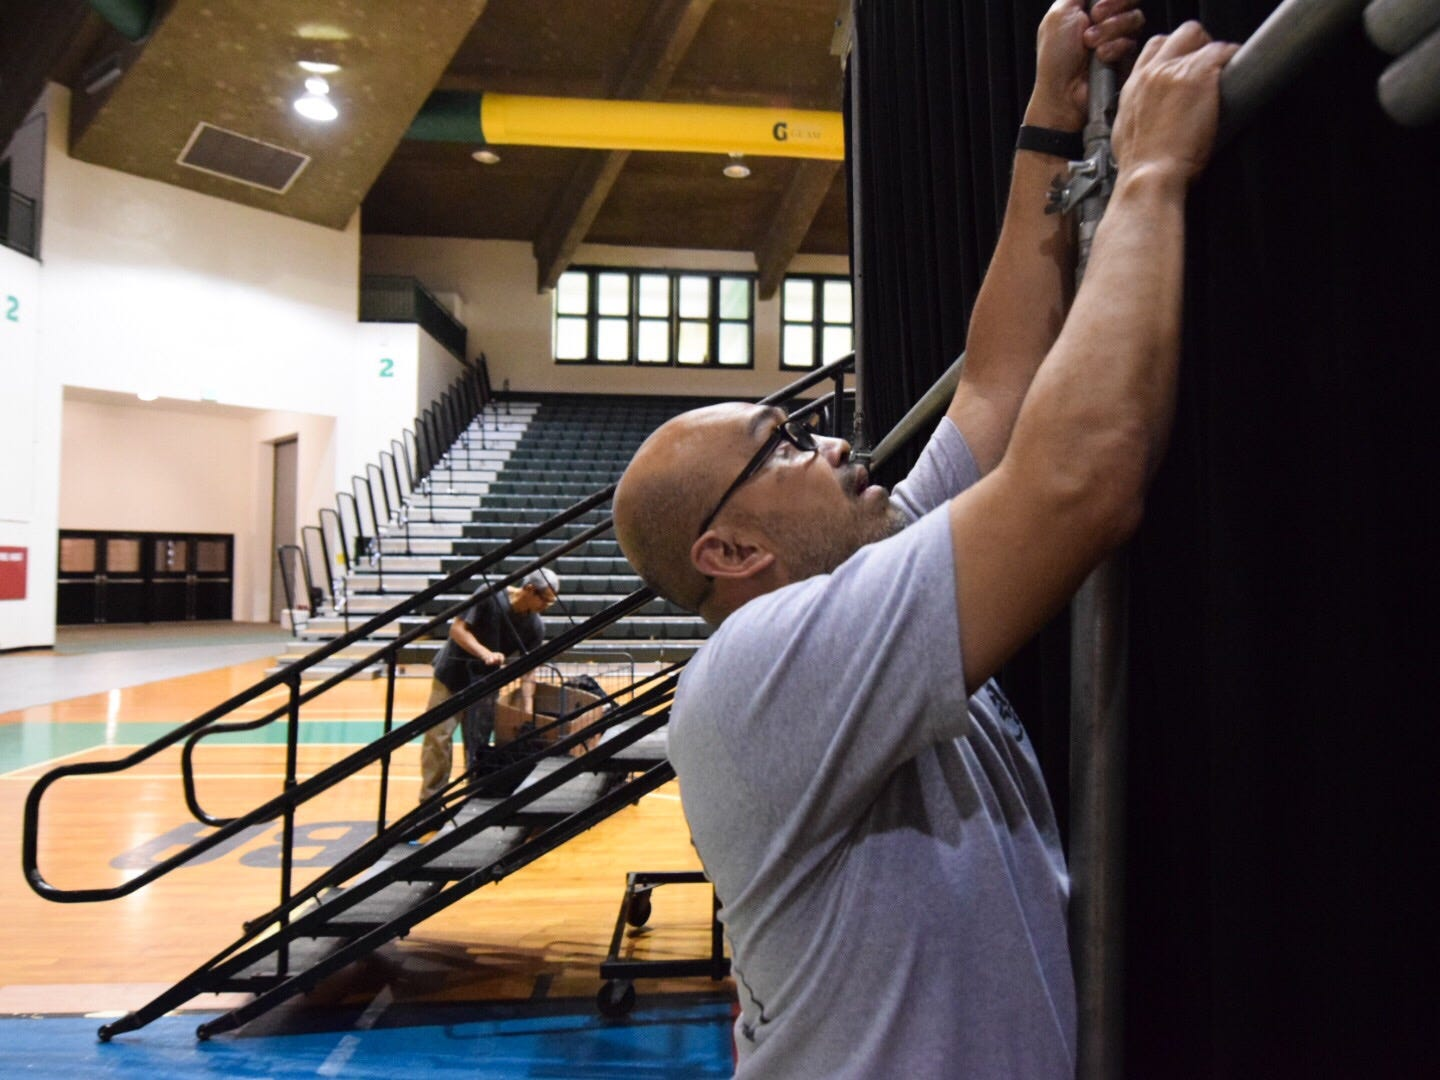 Maintenance worker Jude Camemo makes adjustments to the University of Guam Calvo Field House stage in preparation for the 51st University of Guam Charter Day at the UOG Calvo Field House, March 11, 2019.